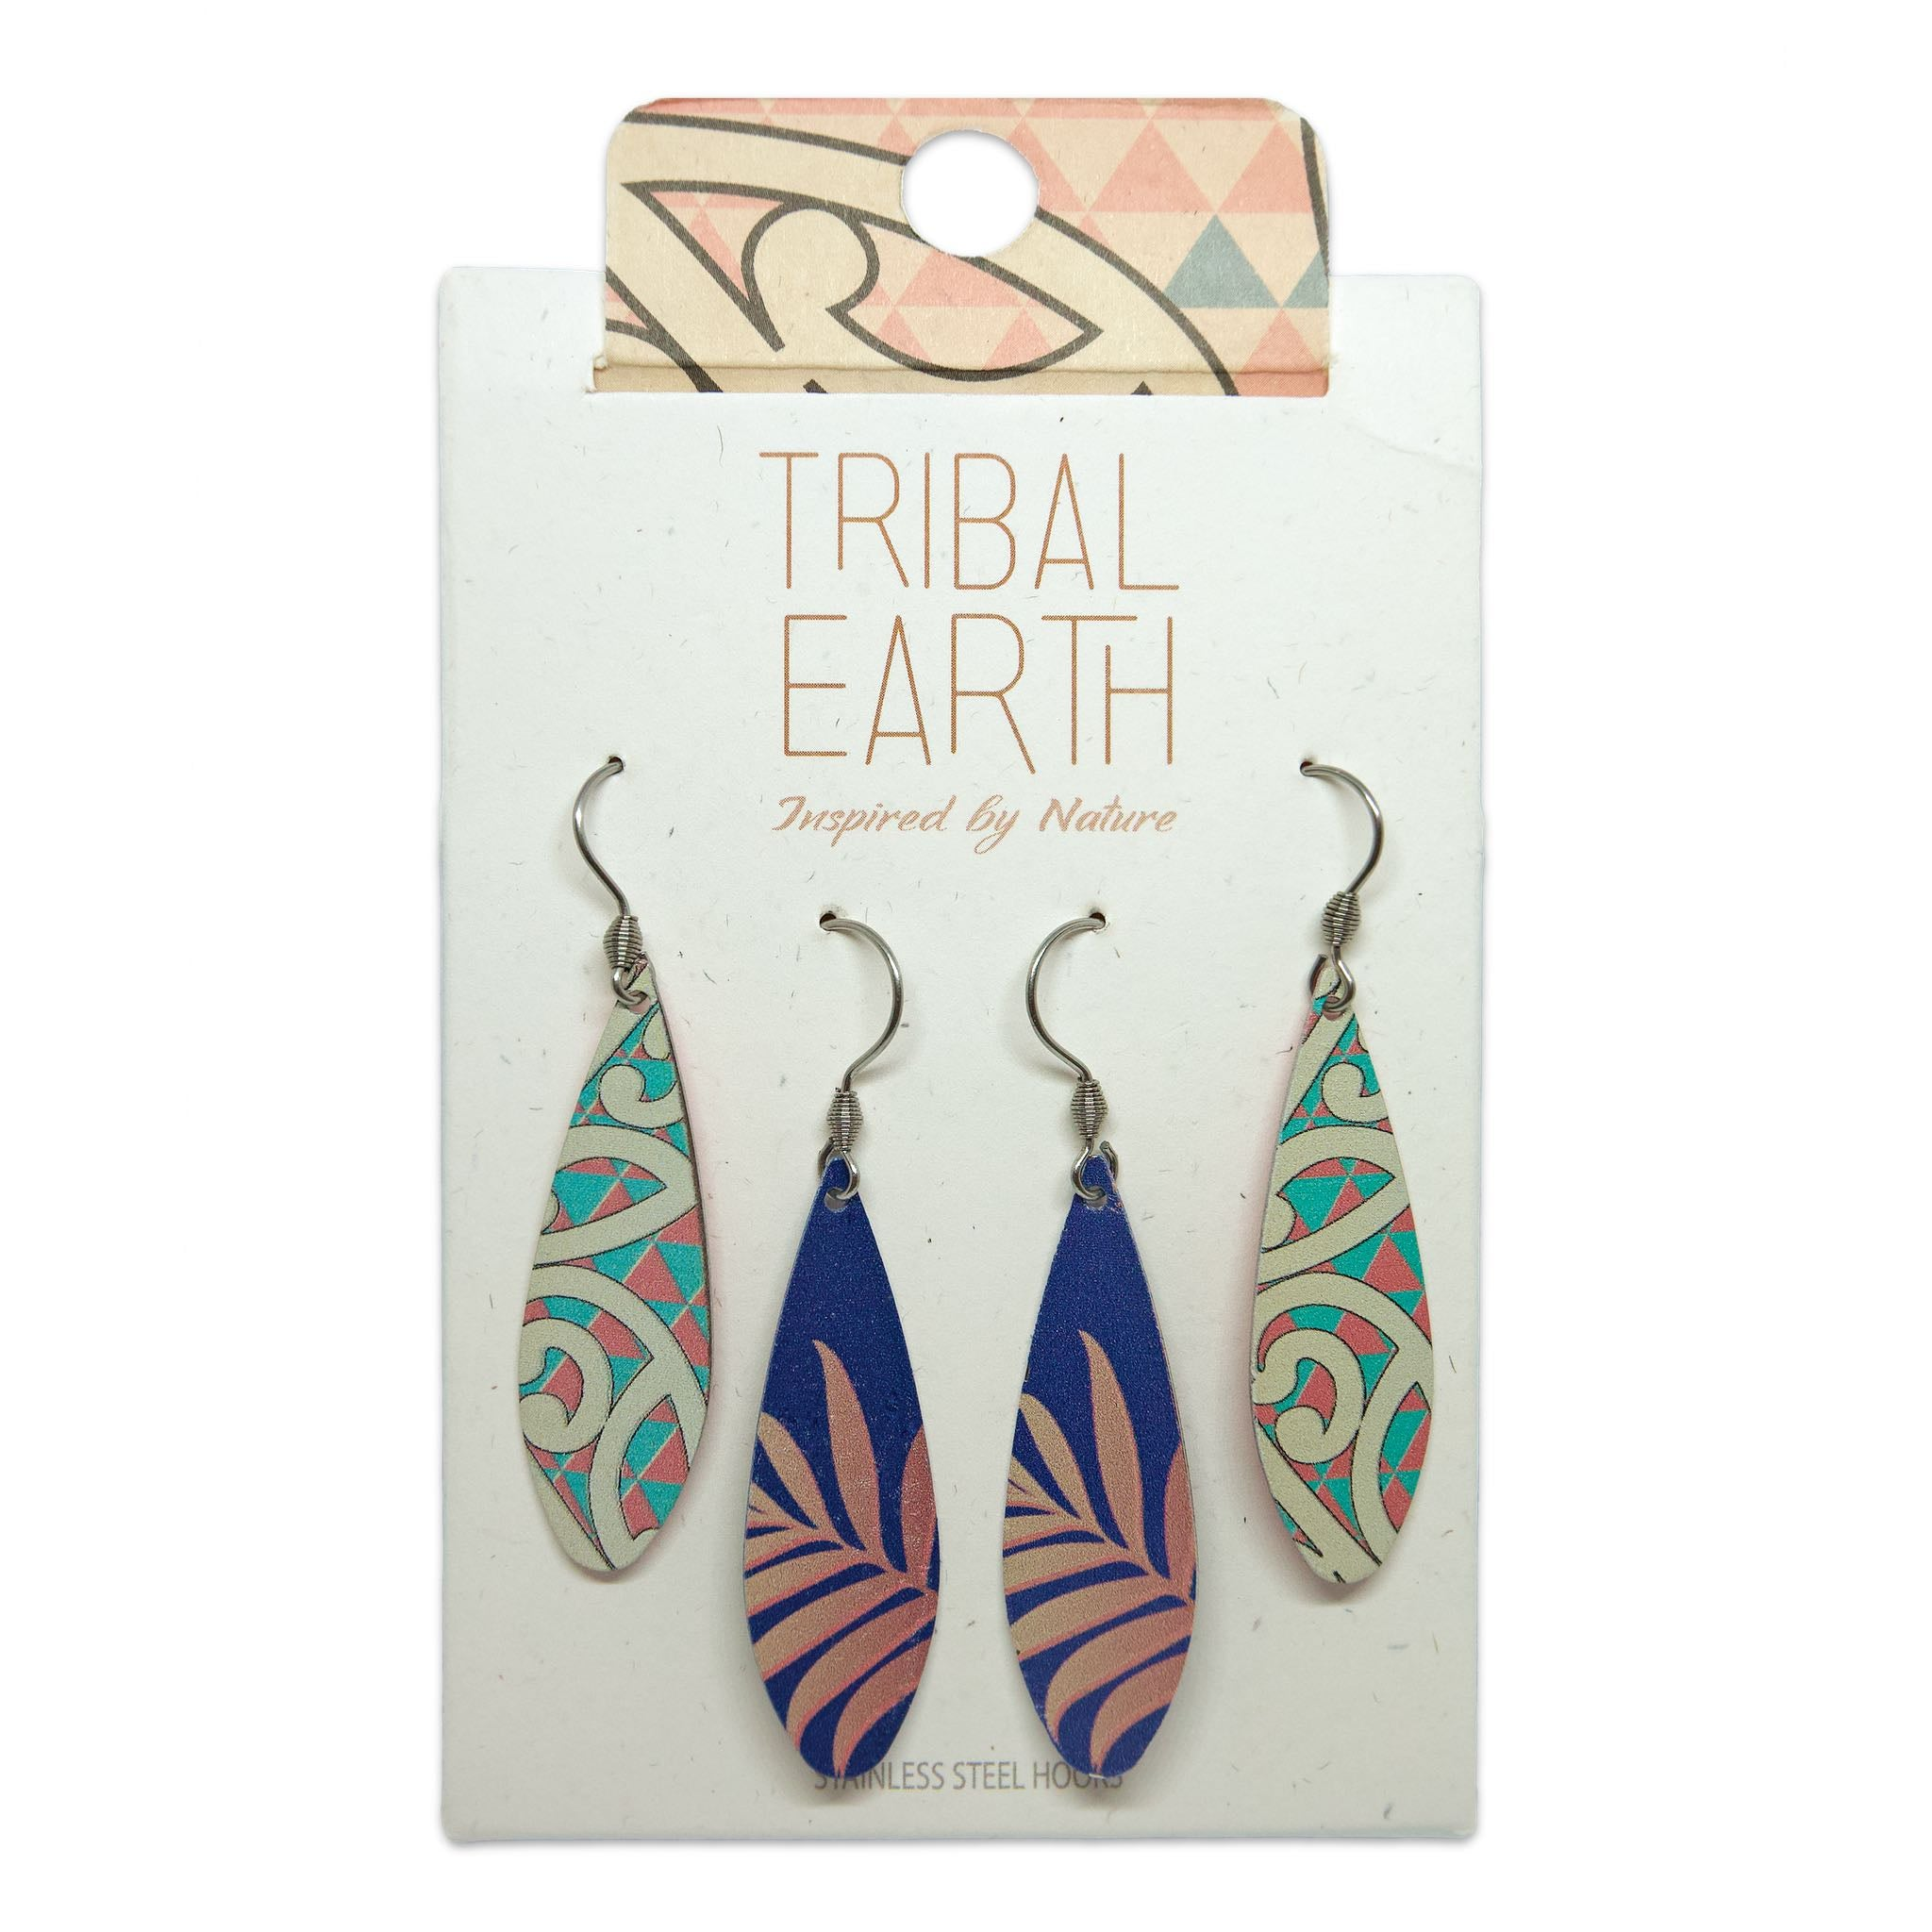 Teardrop earring set. Designed in New Zealand. www.tribalearth.co.nz